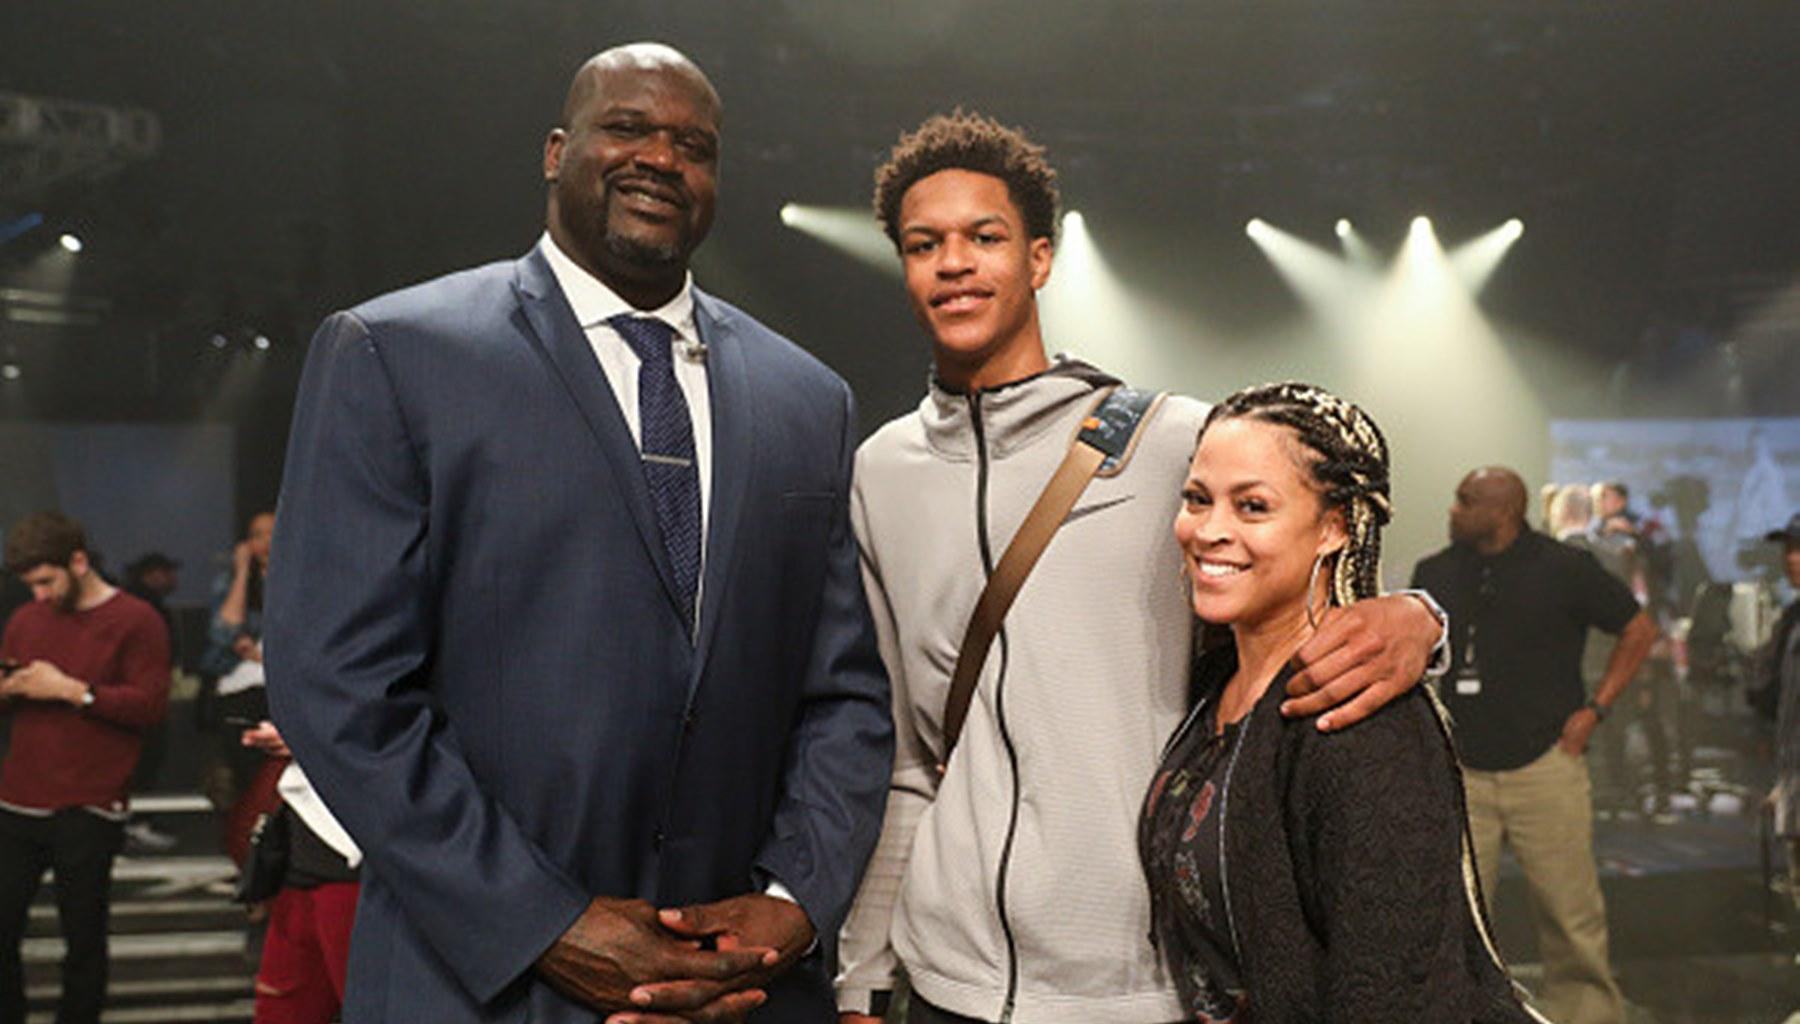 Shaquille O'Neal, His Ex-Wife, Shaunie, And Their Children Pay Loving Tribute To Uncle Kobe Byrant And Gianna